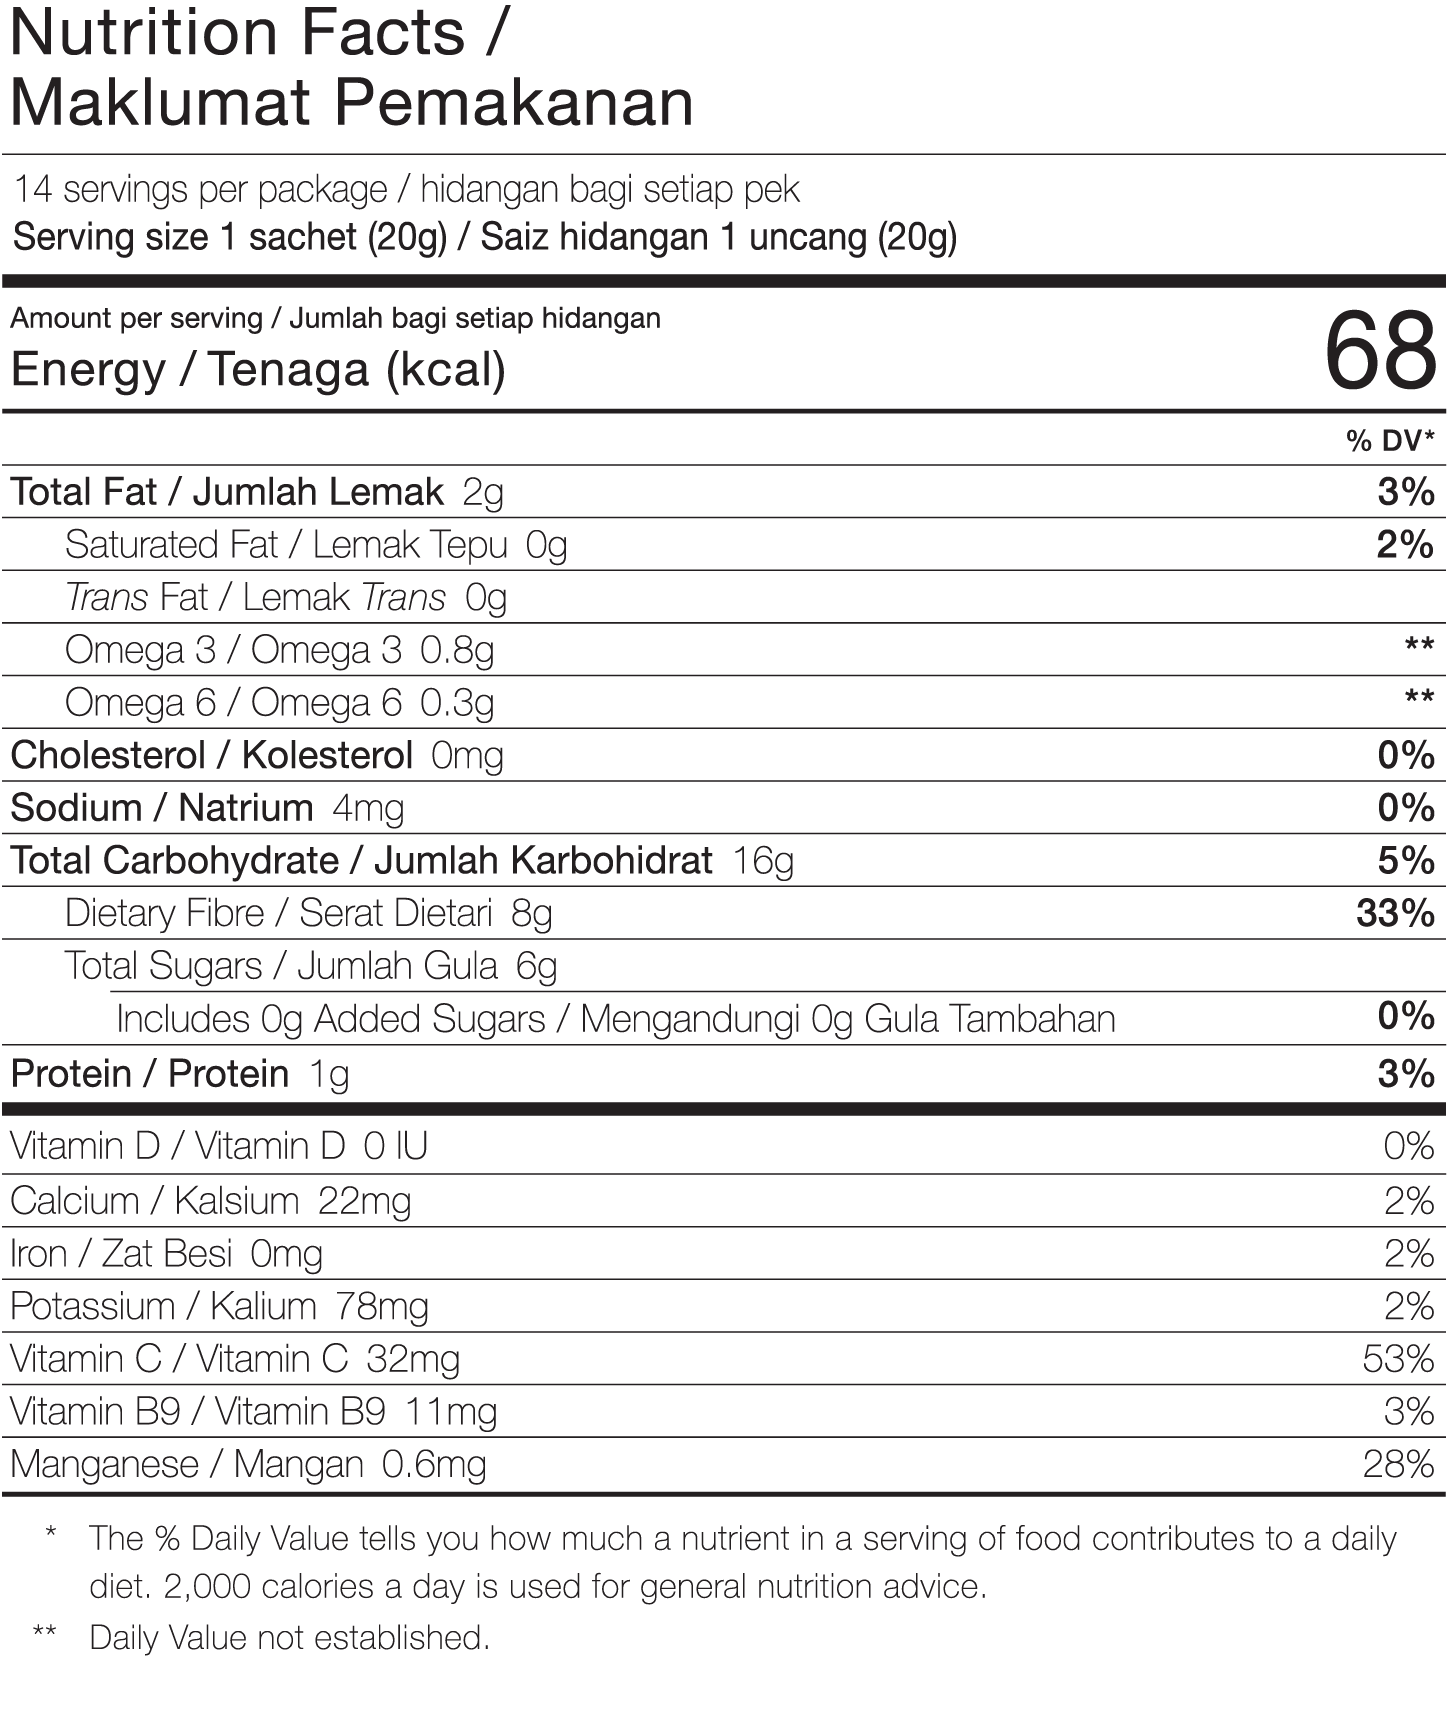 ANANAS NUTRITION FACTS (MOBILE)-01.png